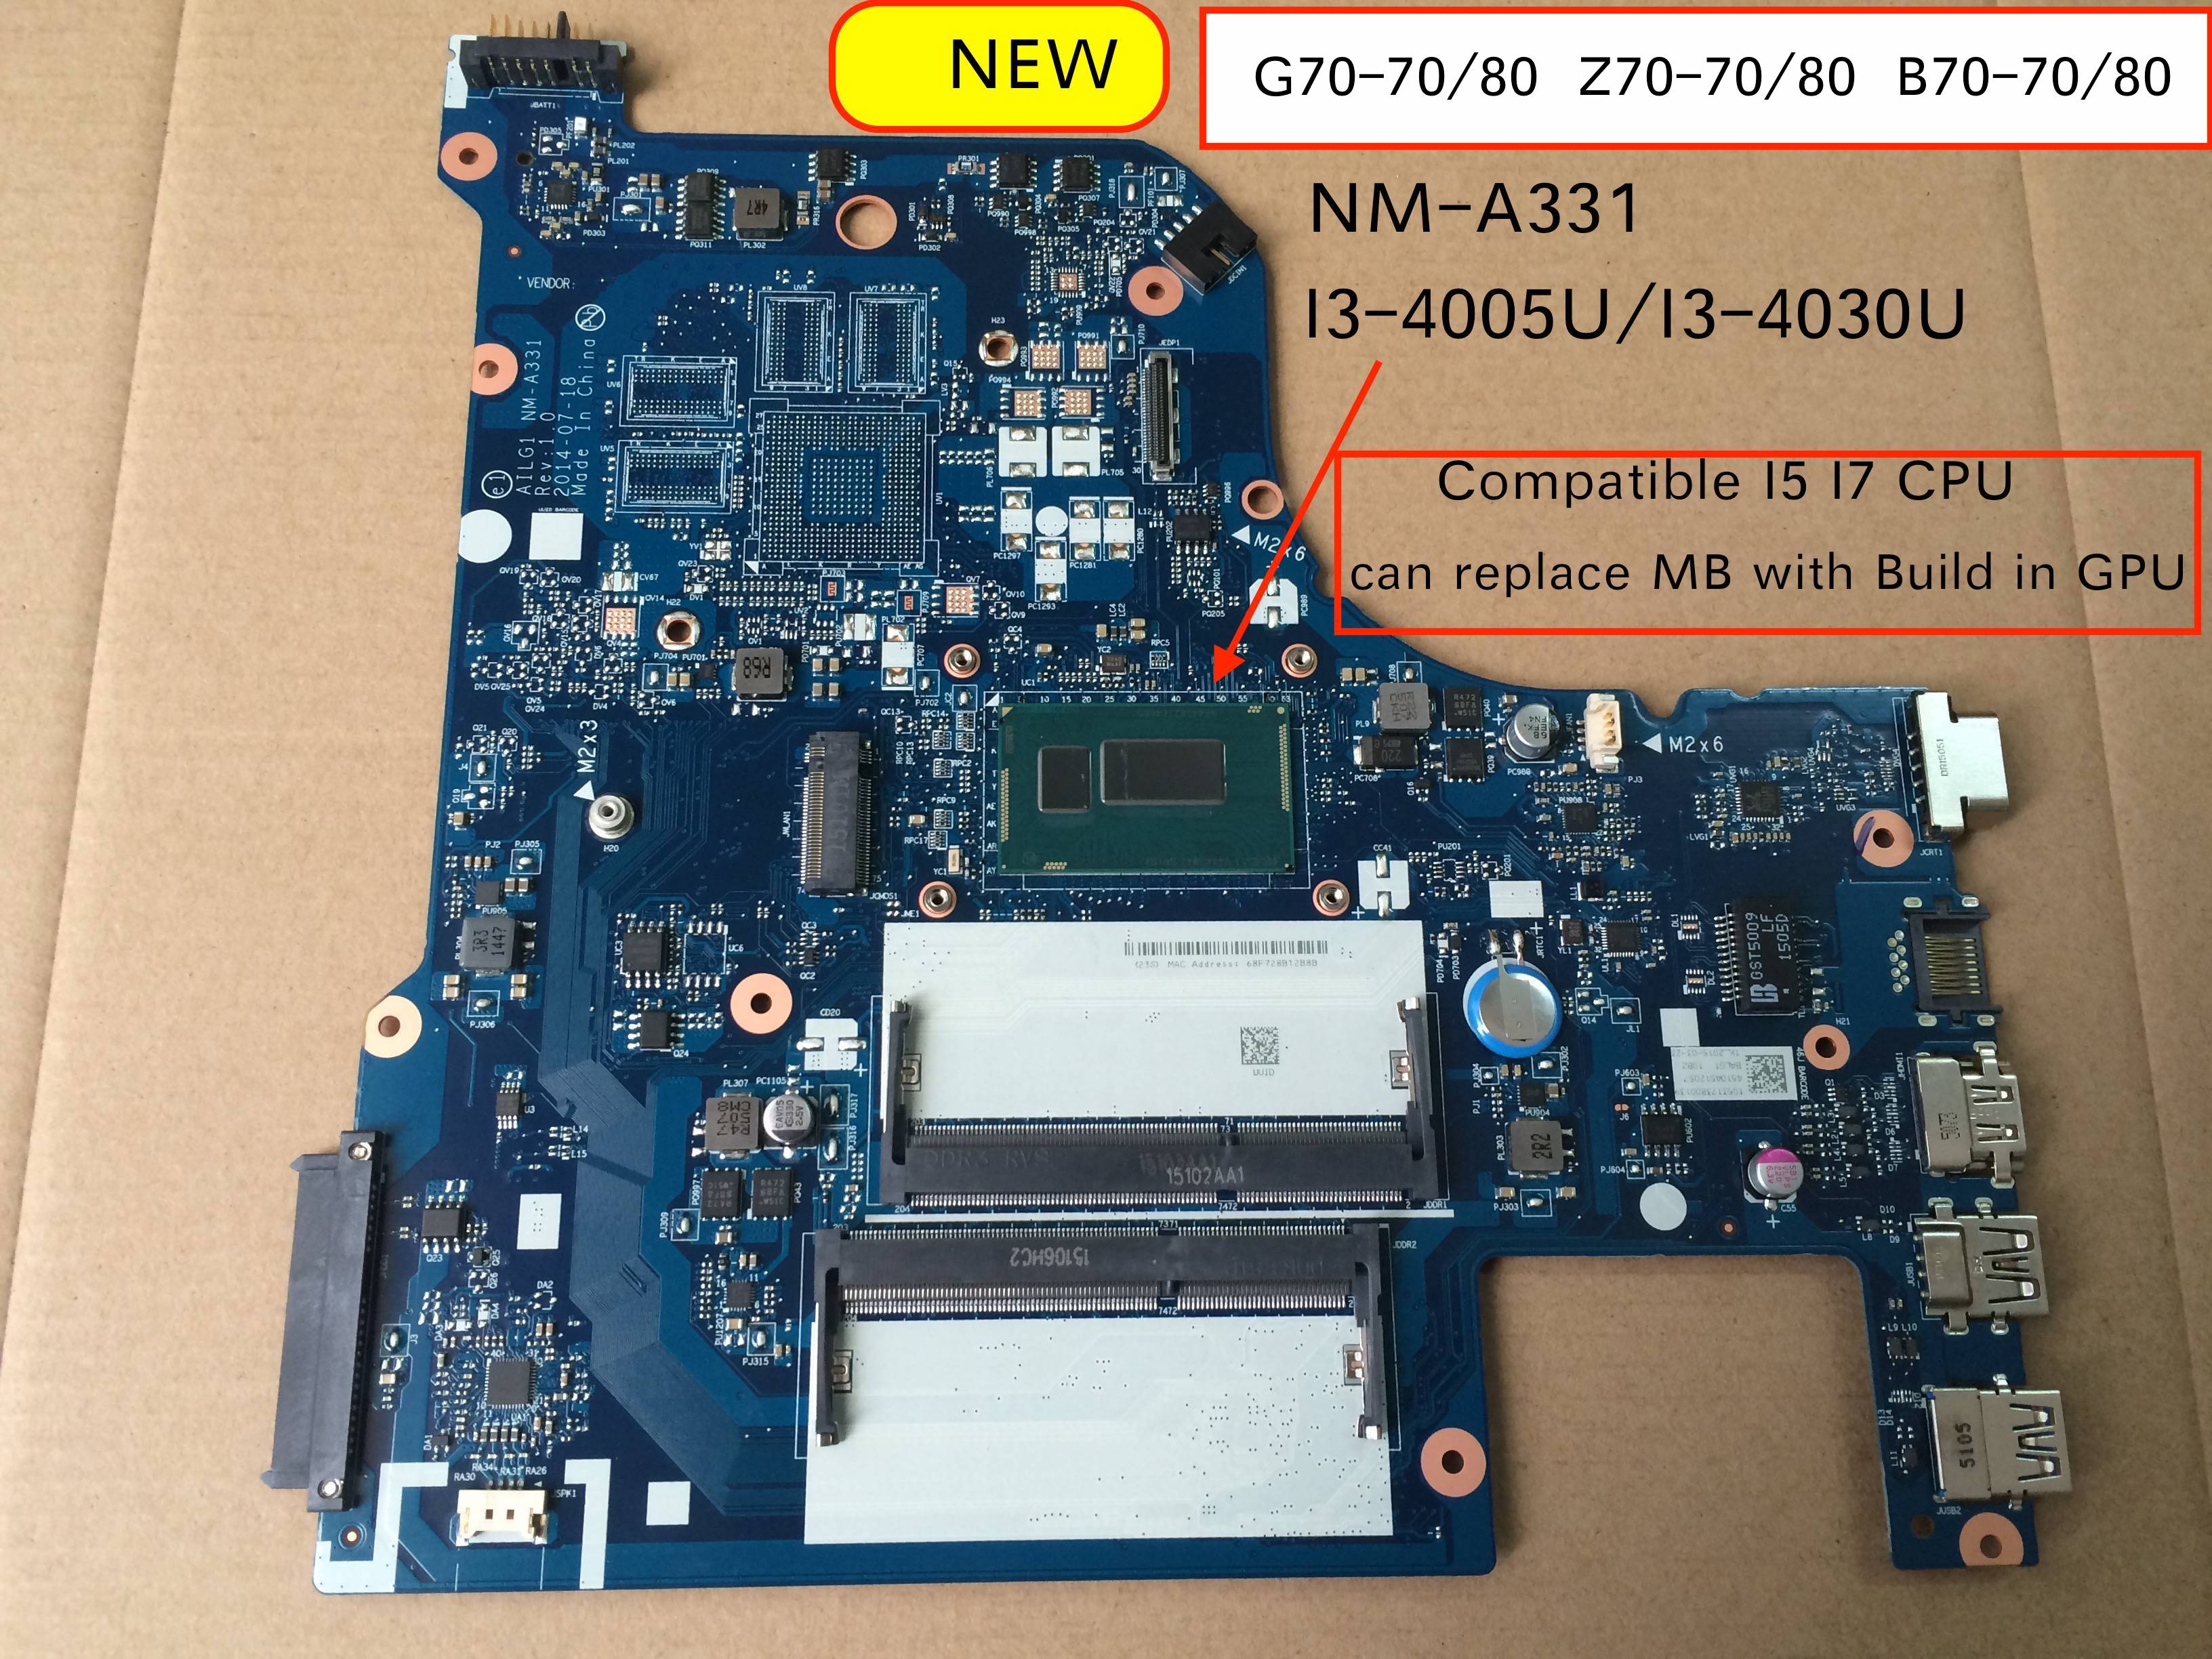 For Lenovo G70-70 G70-80 B70-80 B70-70 Z70-70 Z70-80 Laptop Motherboard AILG NM-A331 With I3-4005/ I3-4030 CPU